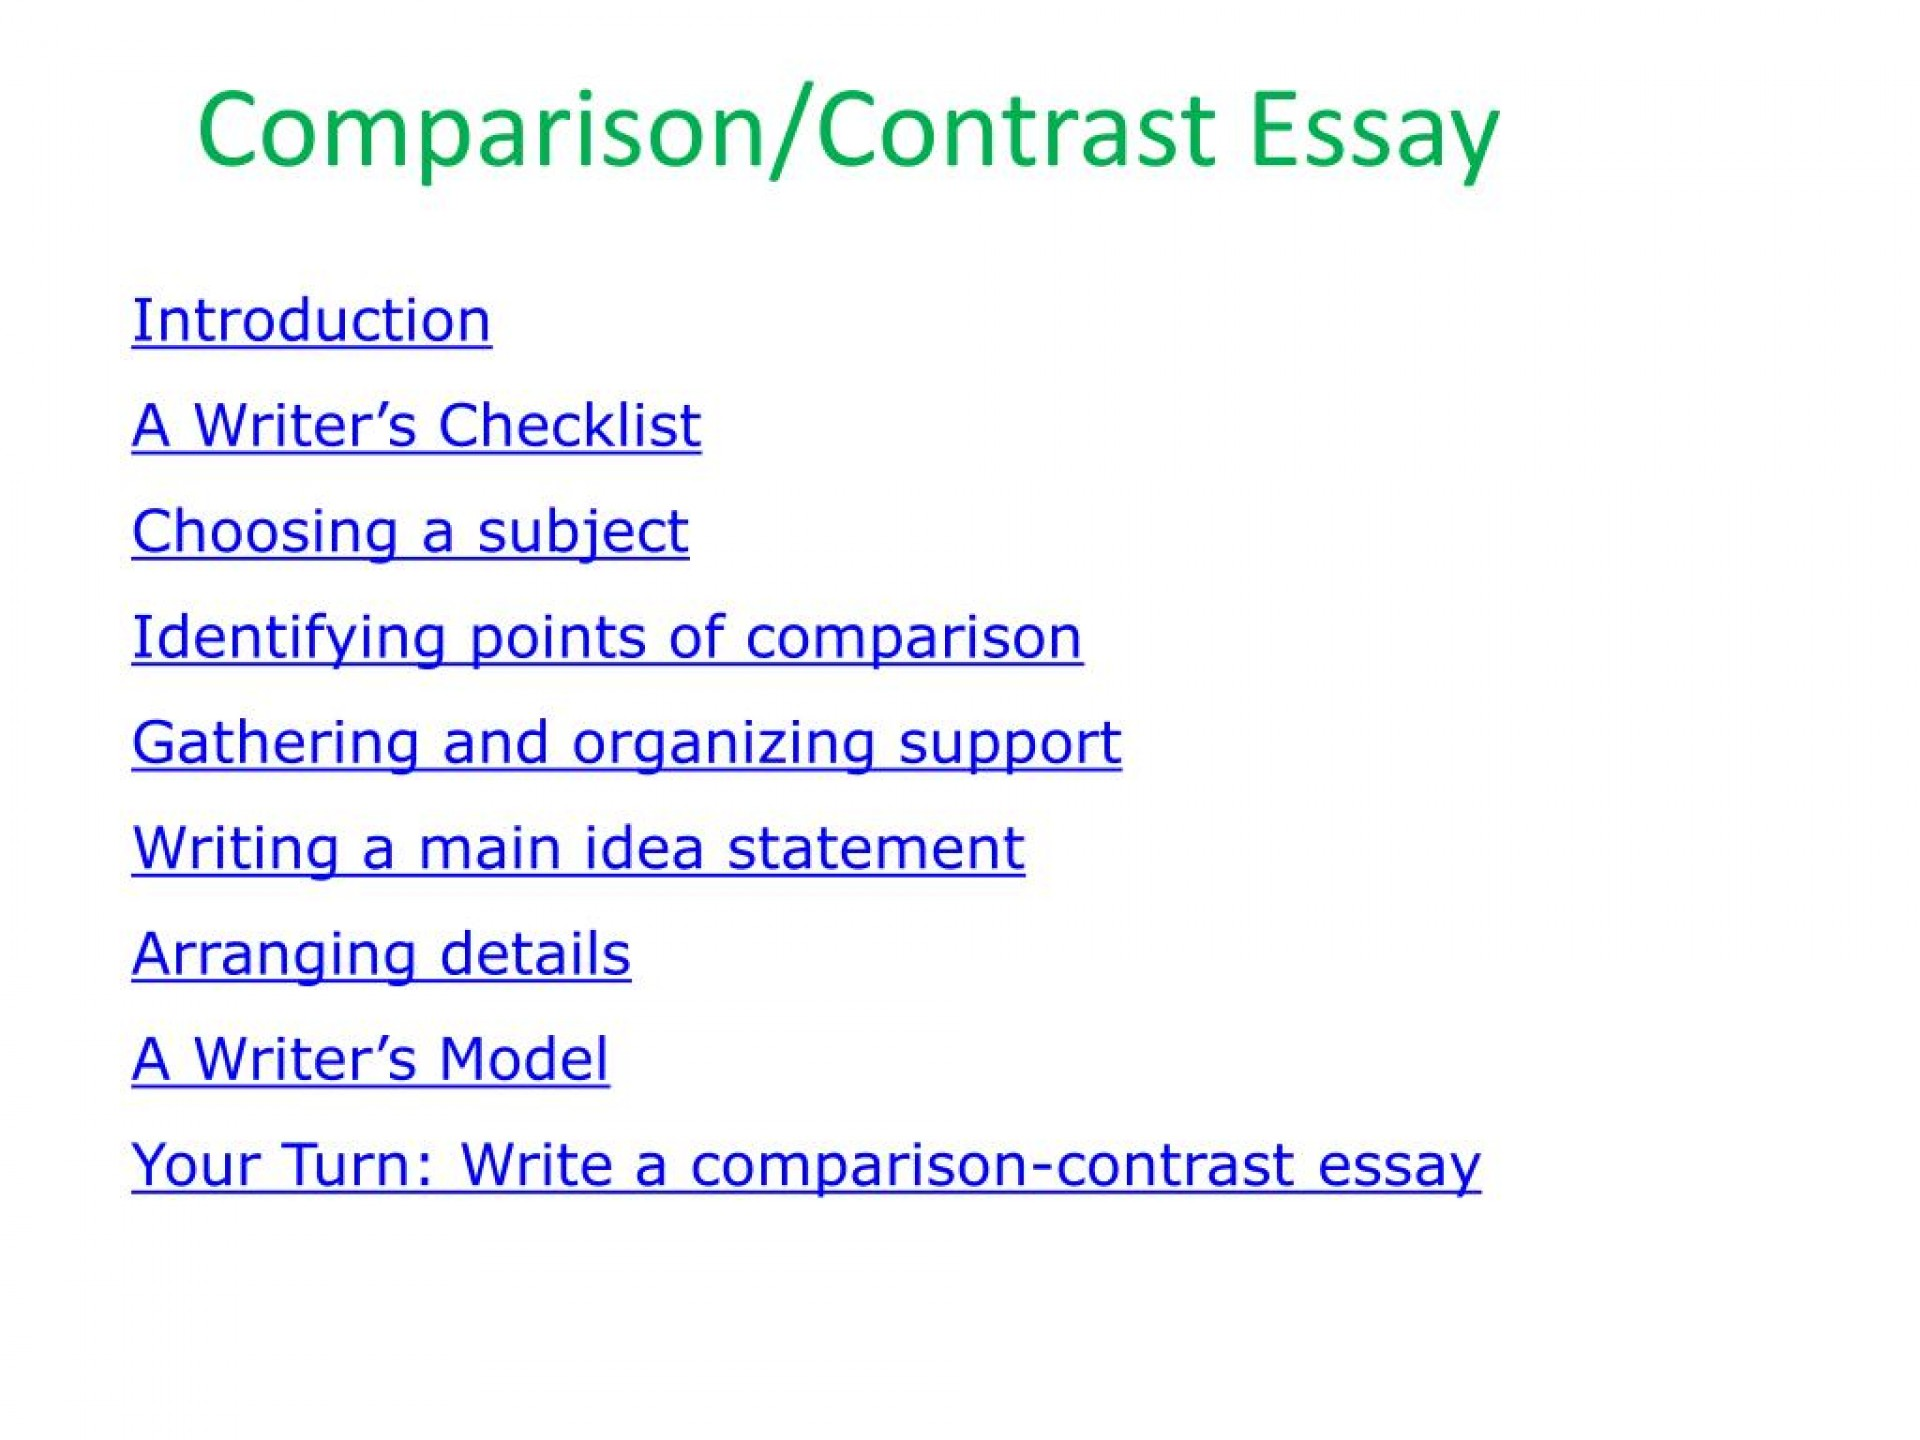 019 Comparison And Contrast Essay L Awful Examples Point-by-point Example 1920